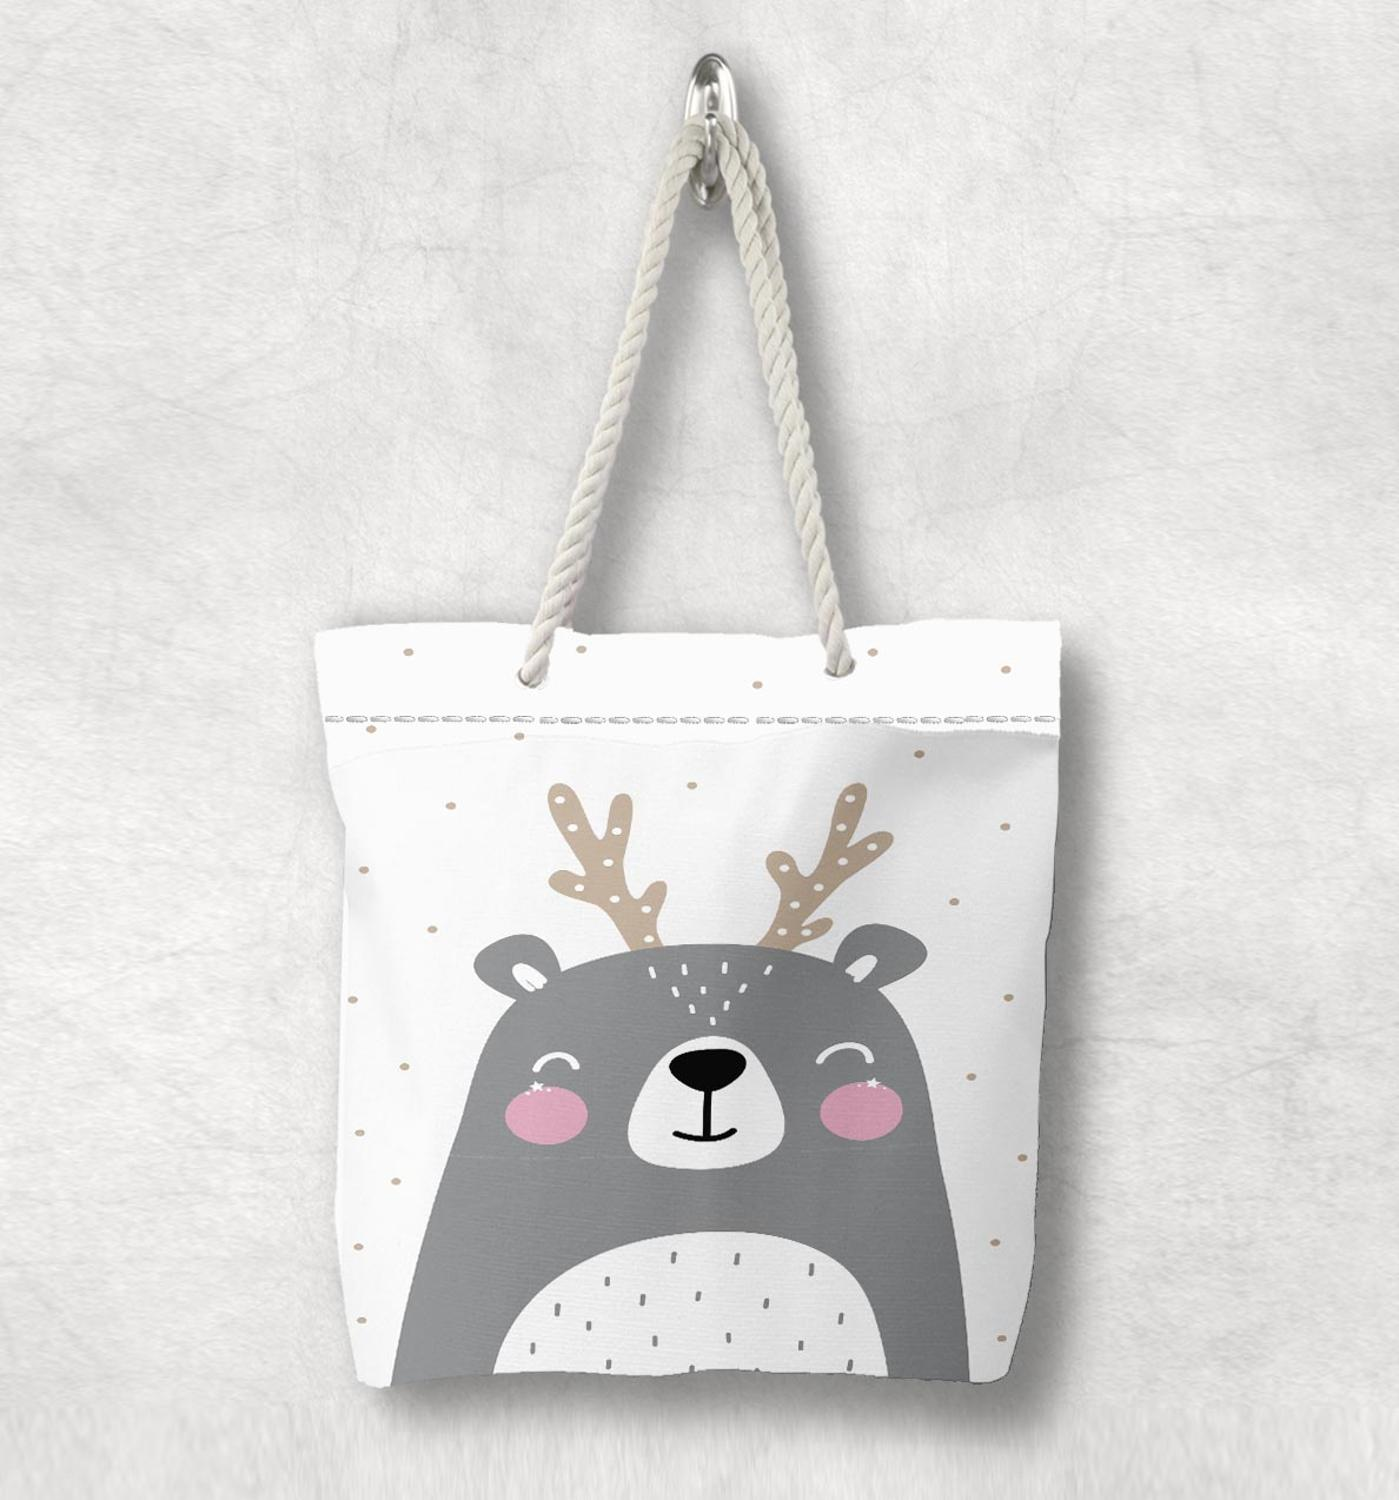 Else Gray White Pink Deer Cute Animals Scandinavian White Rope Handle Canvas Bag  Cartoon Print Zippered Tote Bag Shoulder Bag